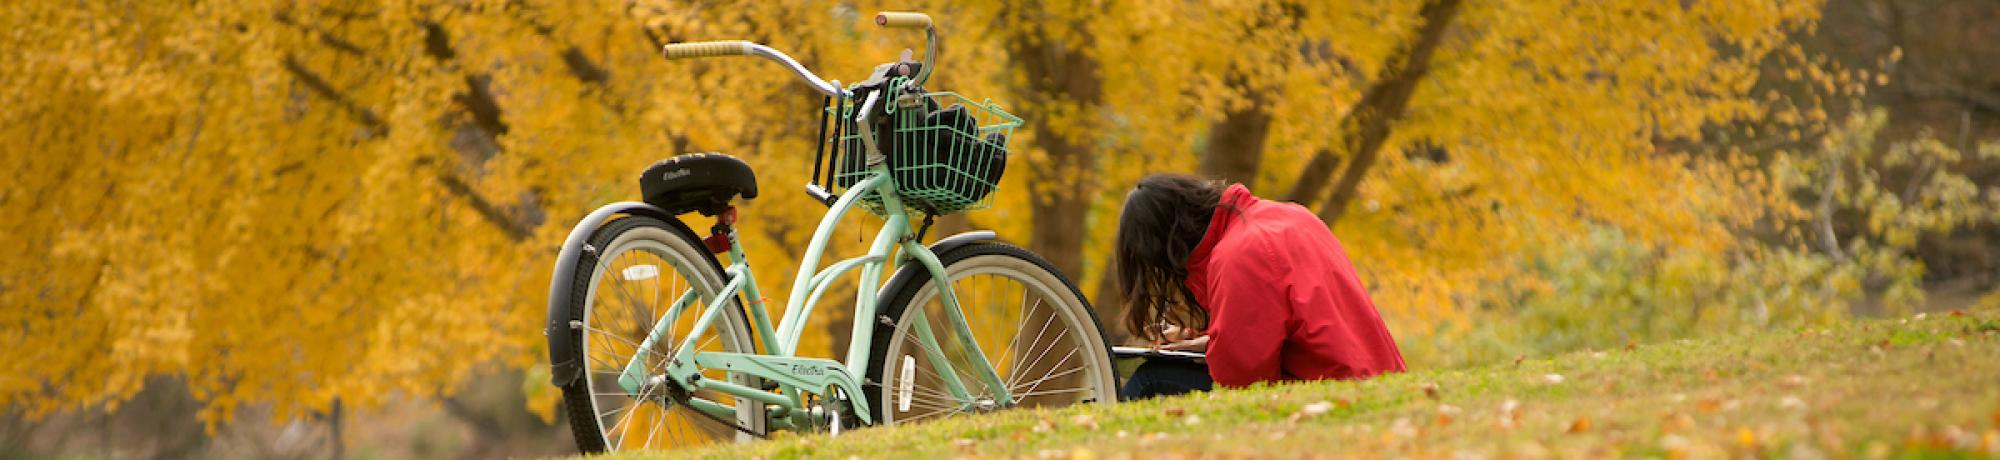 Student reading in leaf-covered grass, next to bike.